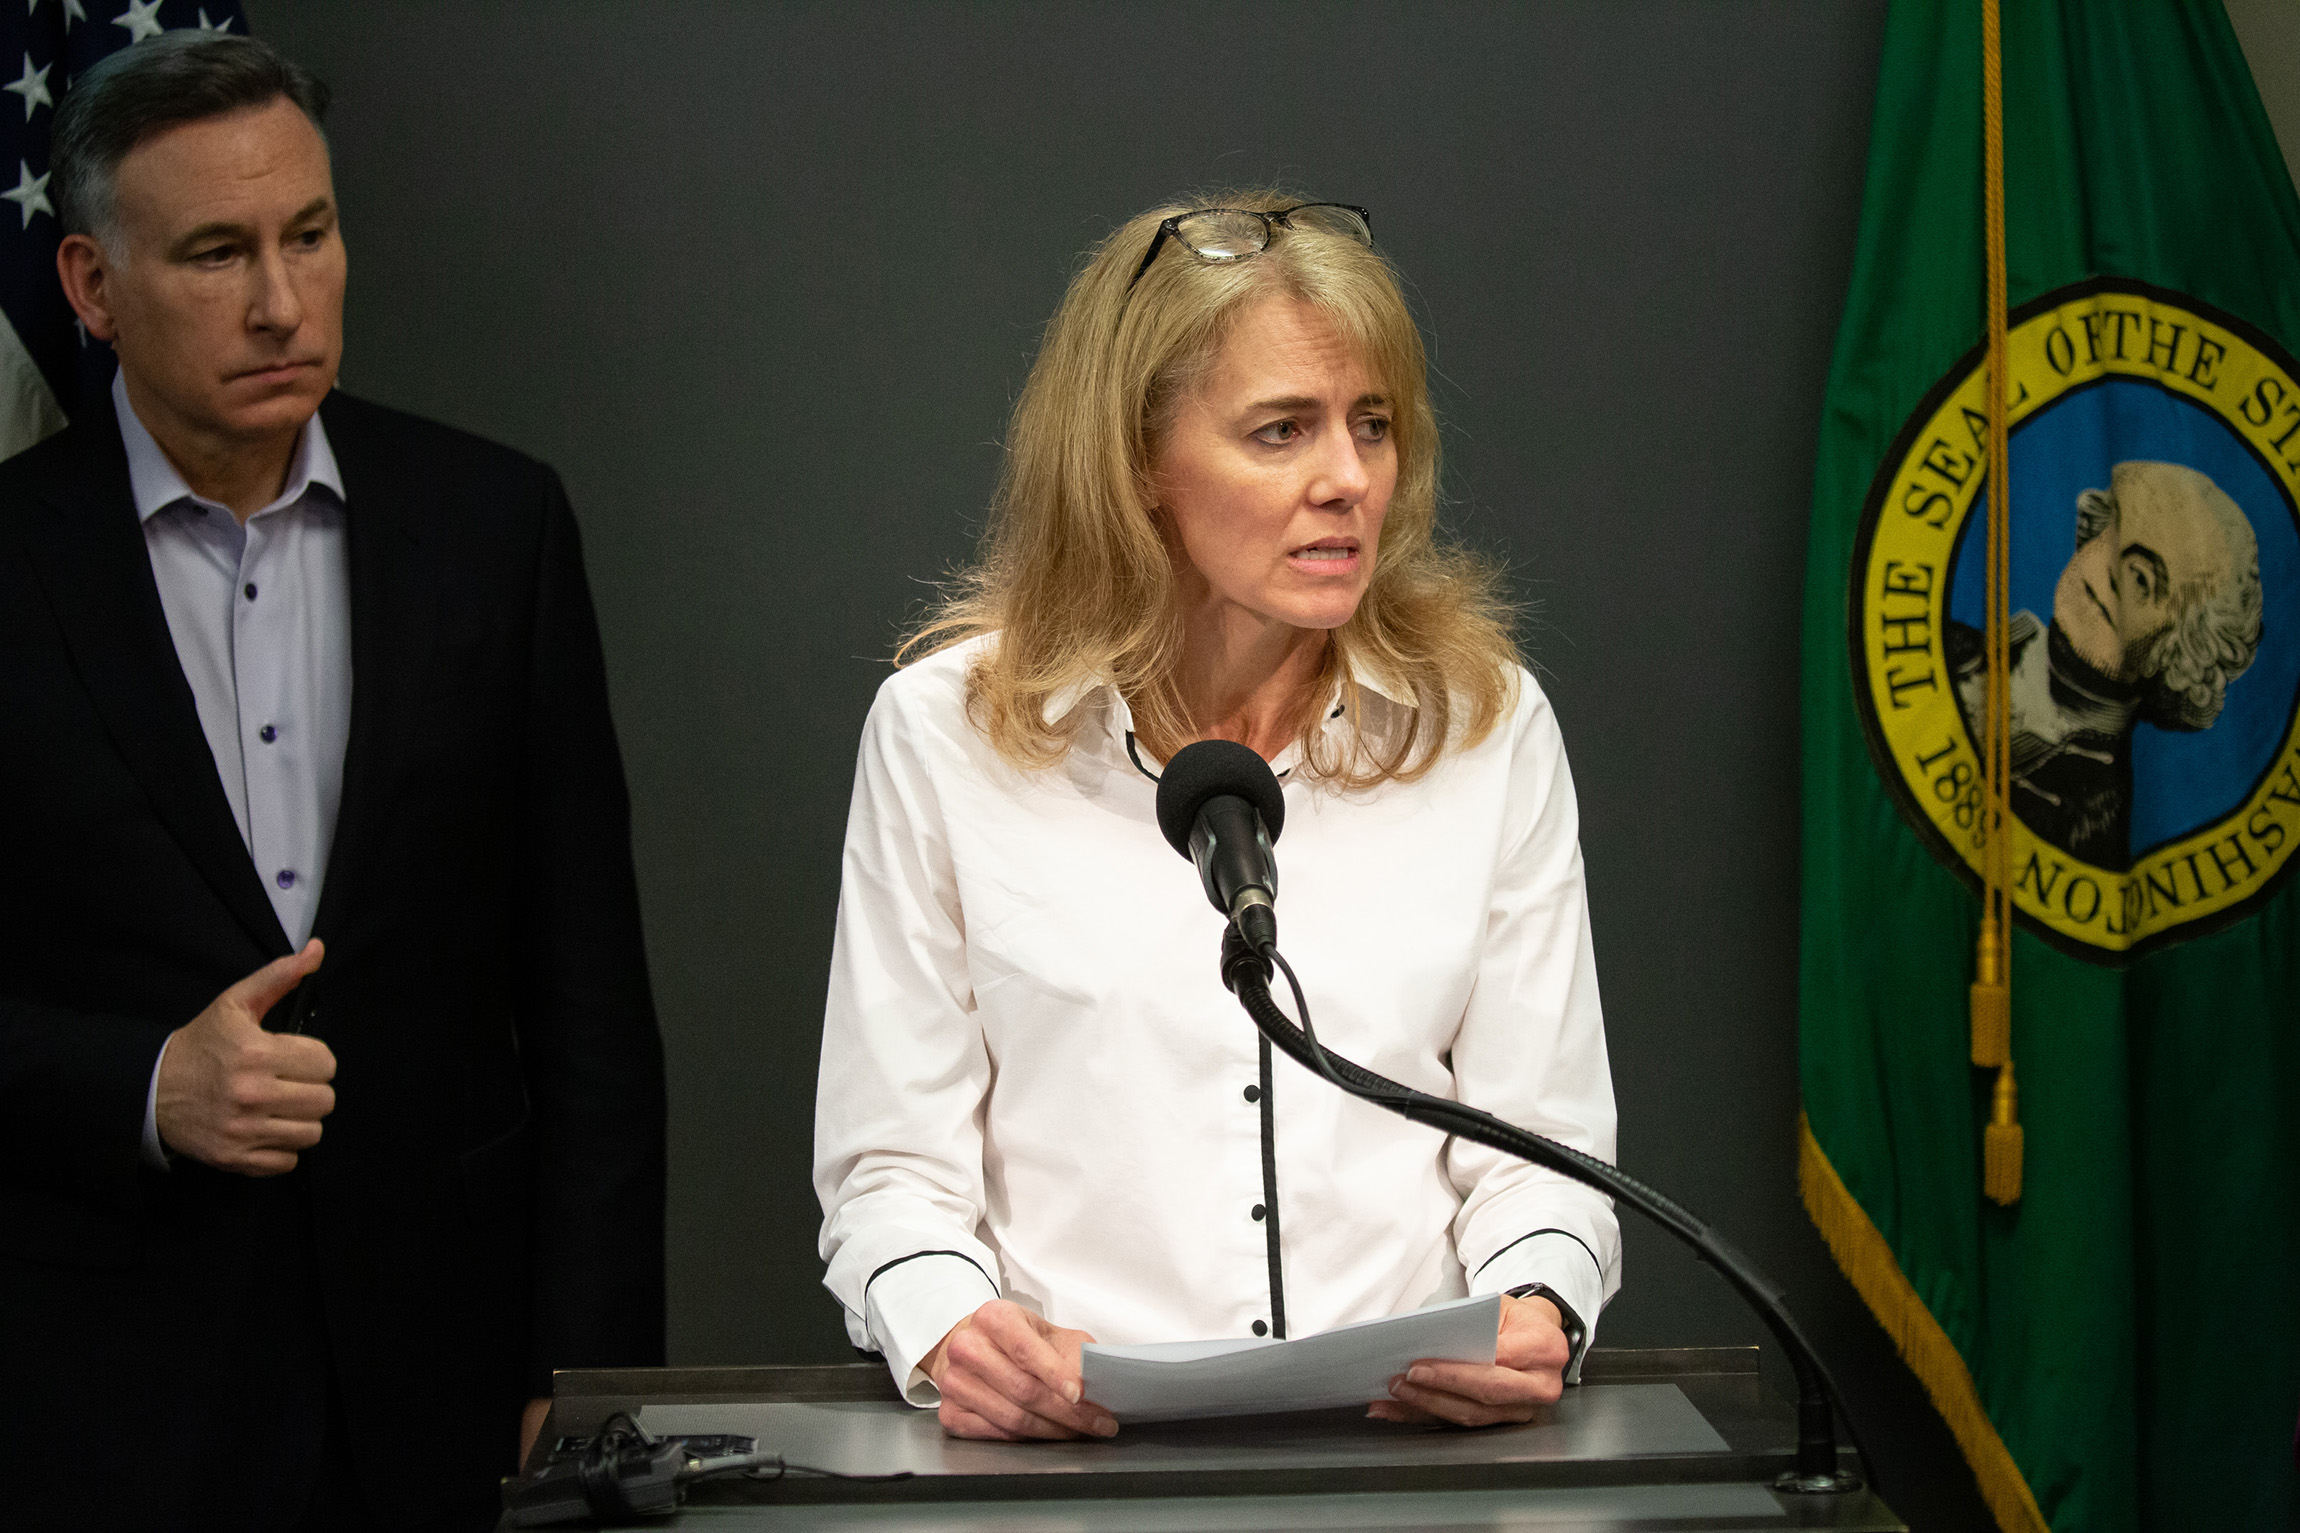 Dr. Kathy Lofy, a state health officer with the Washington State Department of Health, speaks during a press conference on February 29, in Seattle, Washington.